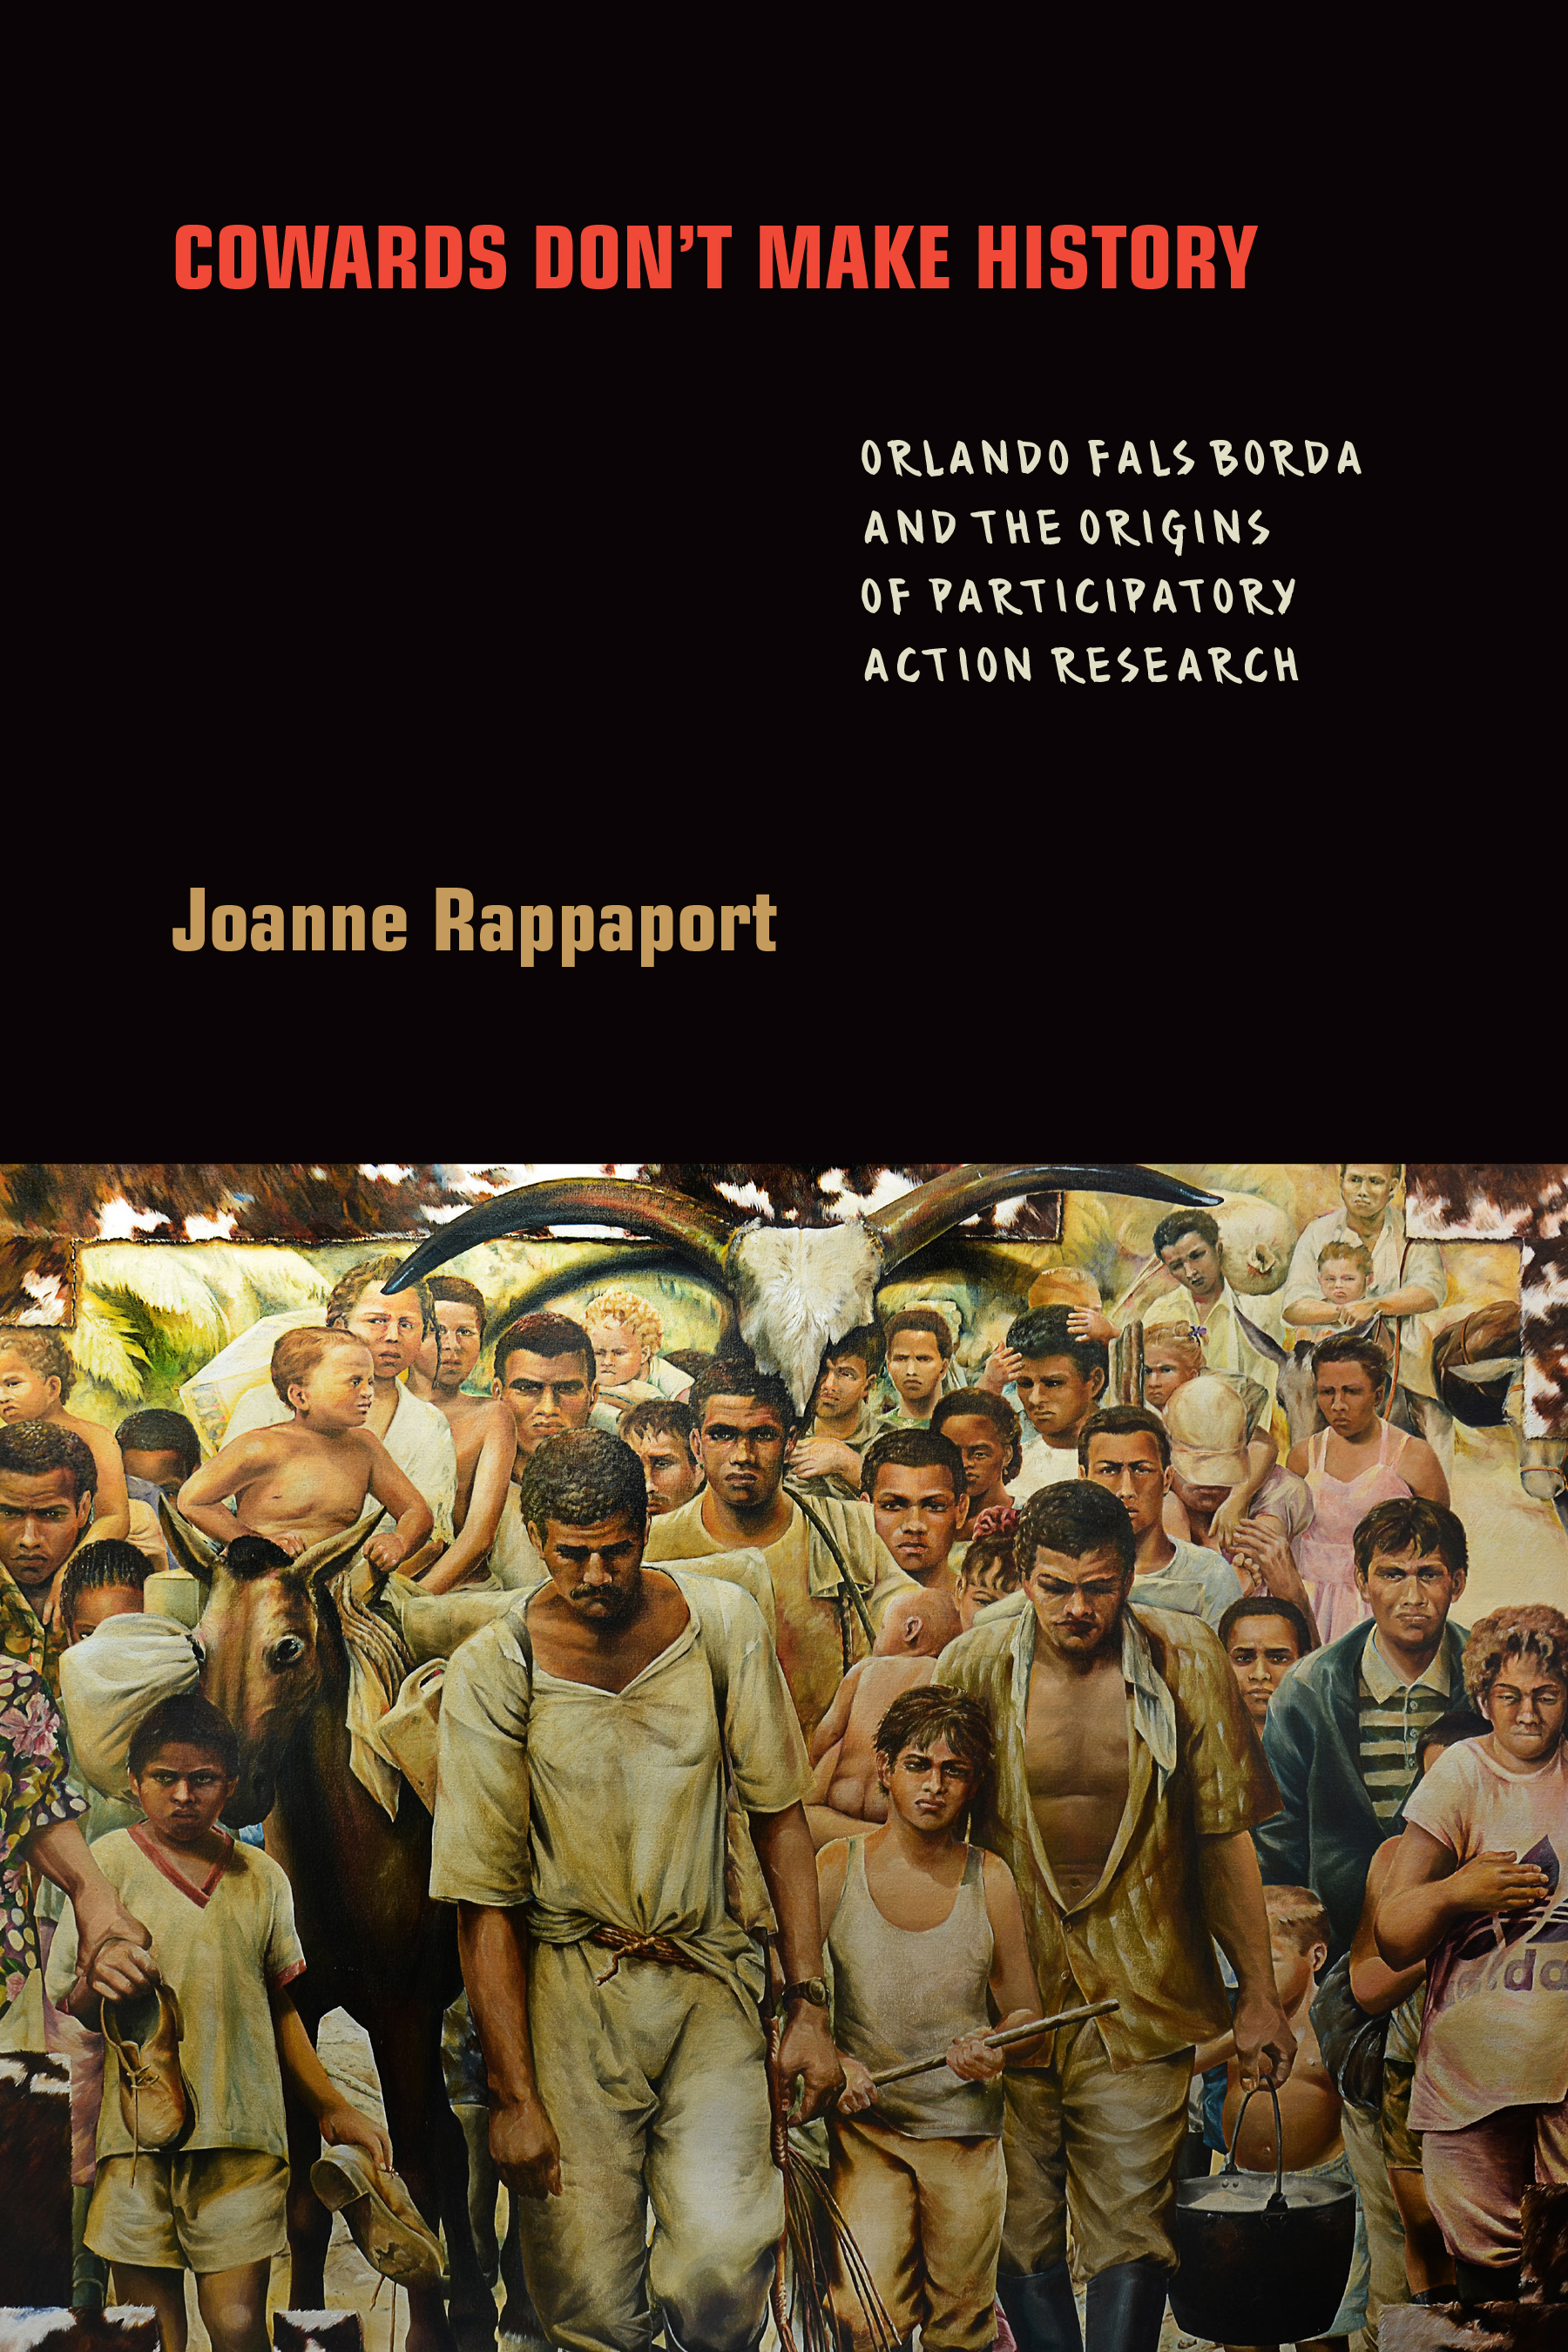 [PDF] [EPUB] Cowards Don't Make History: Orlando Fals Borda and the Origins of Participatory Action Research Download by Joanne Rappaport